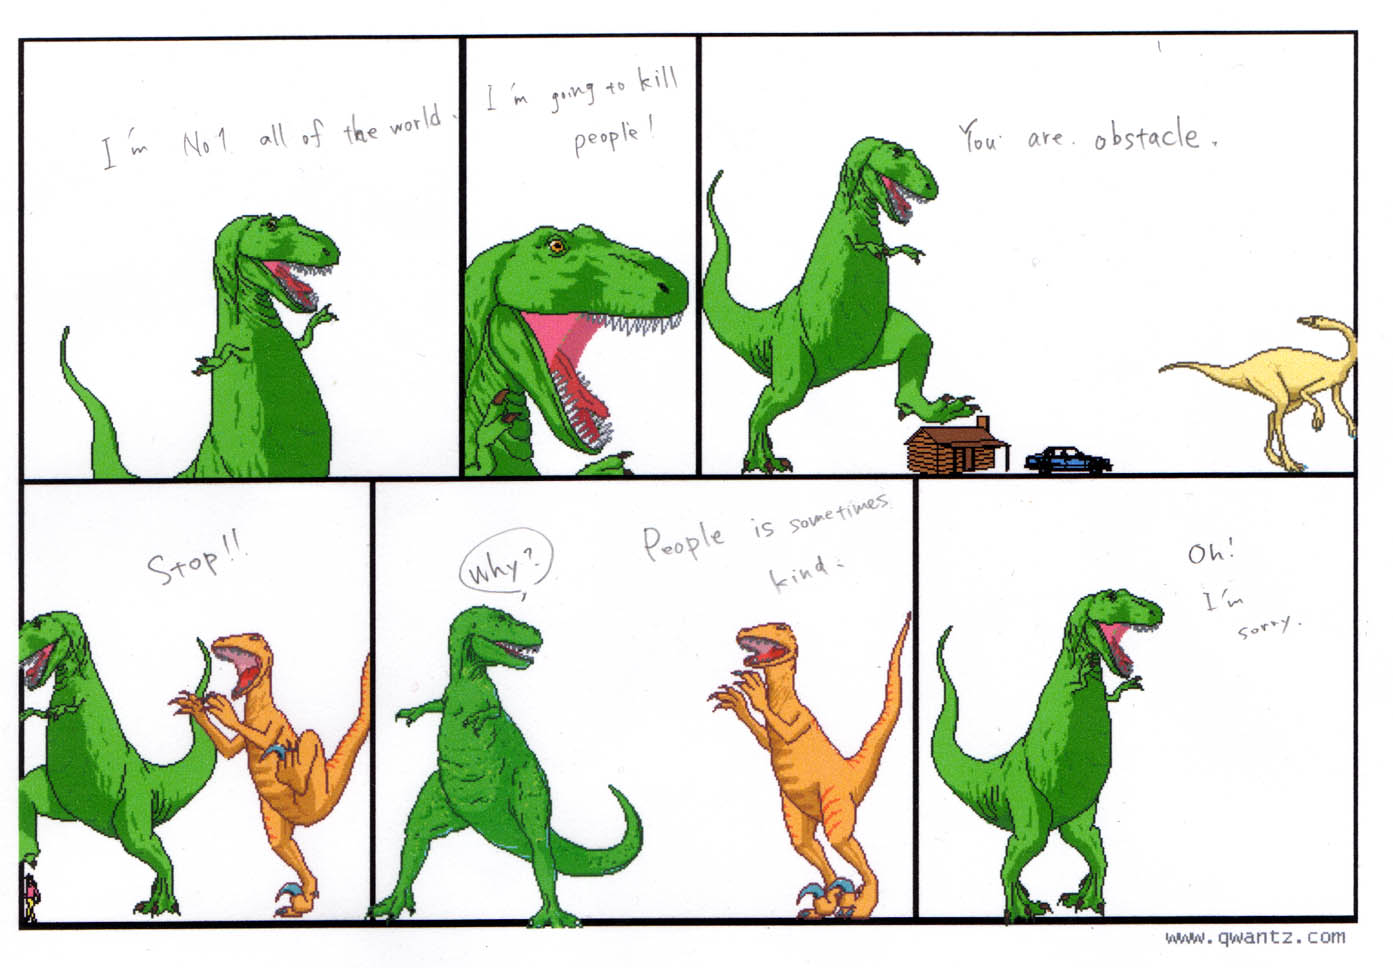 qwantz dating Dinosaur comics is a constrained webcomic by canadian writer ryan north  it is also known as qwantz, after the site's domain name, qwantzcom the first comic was posted on february 1.